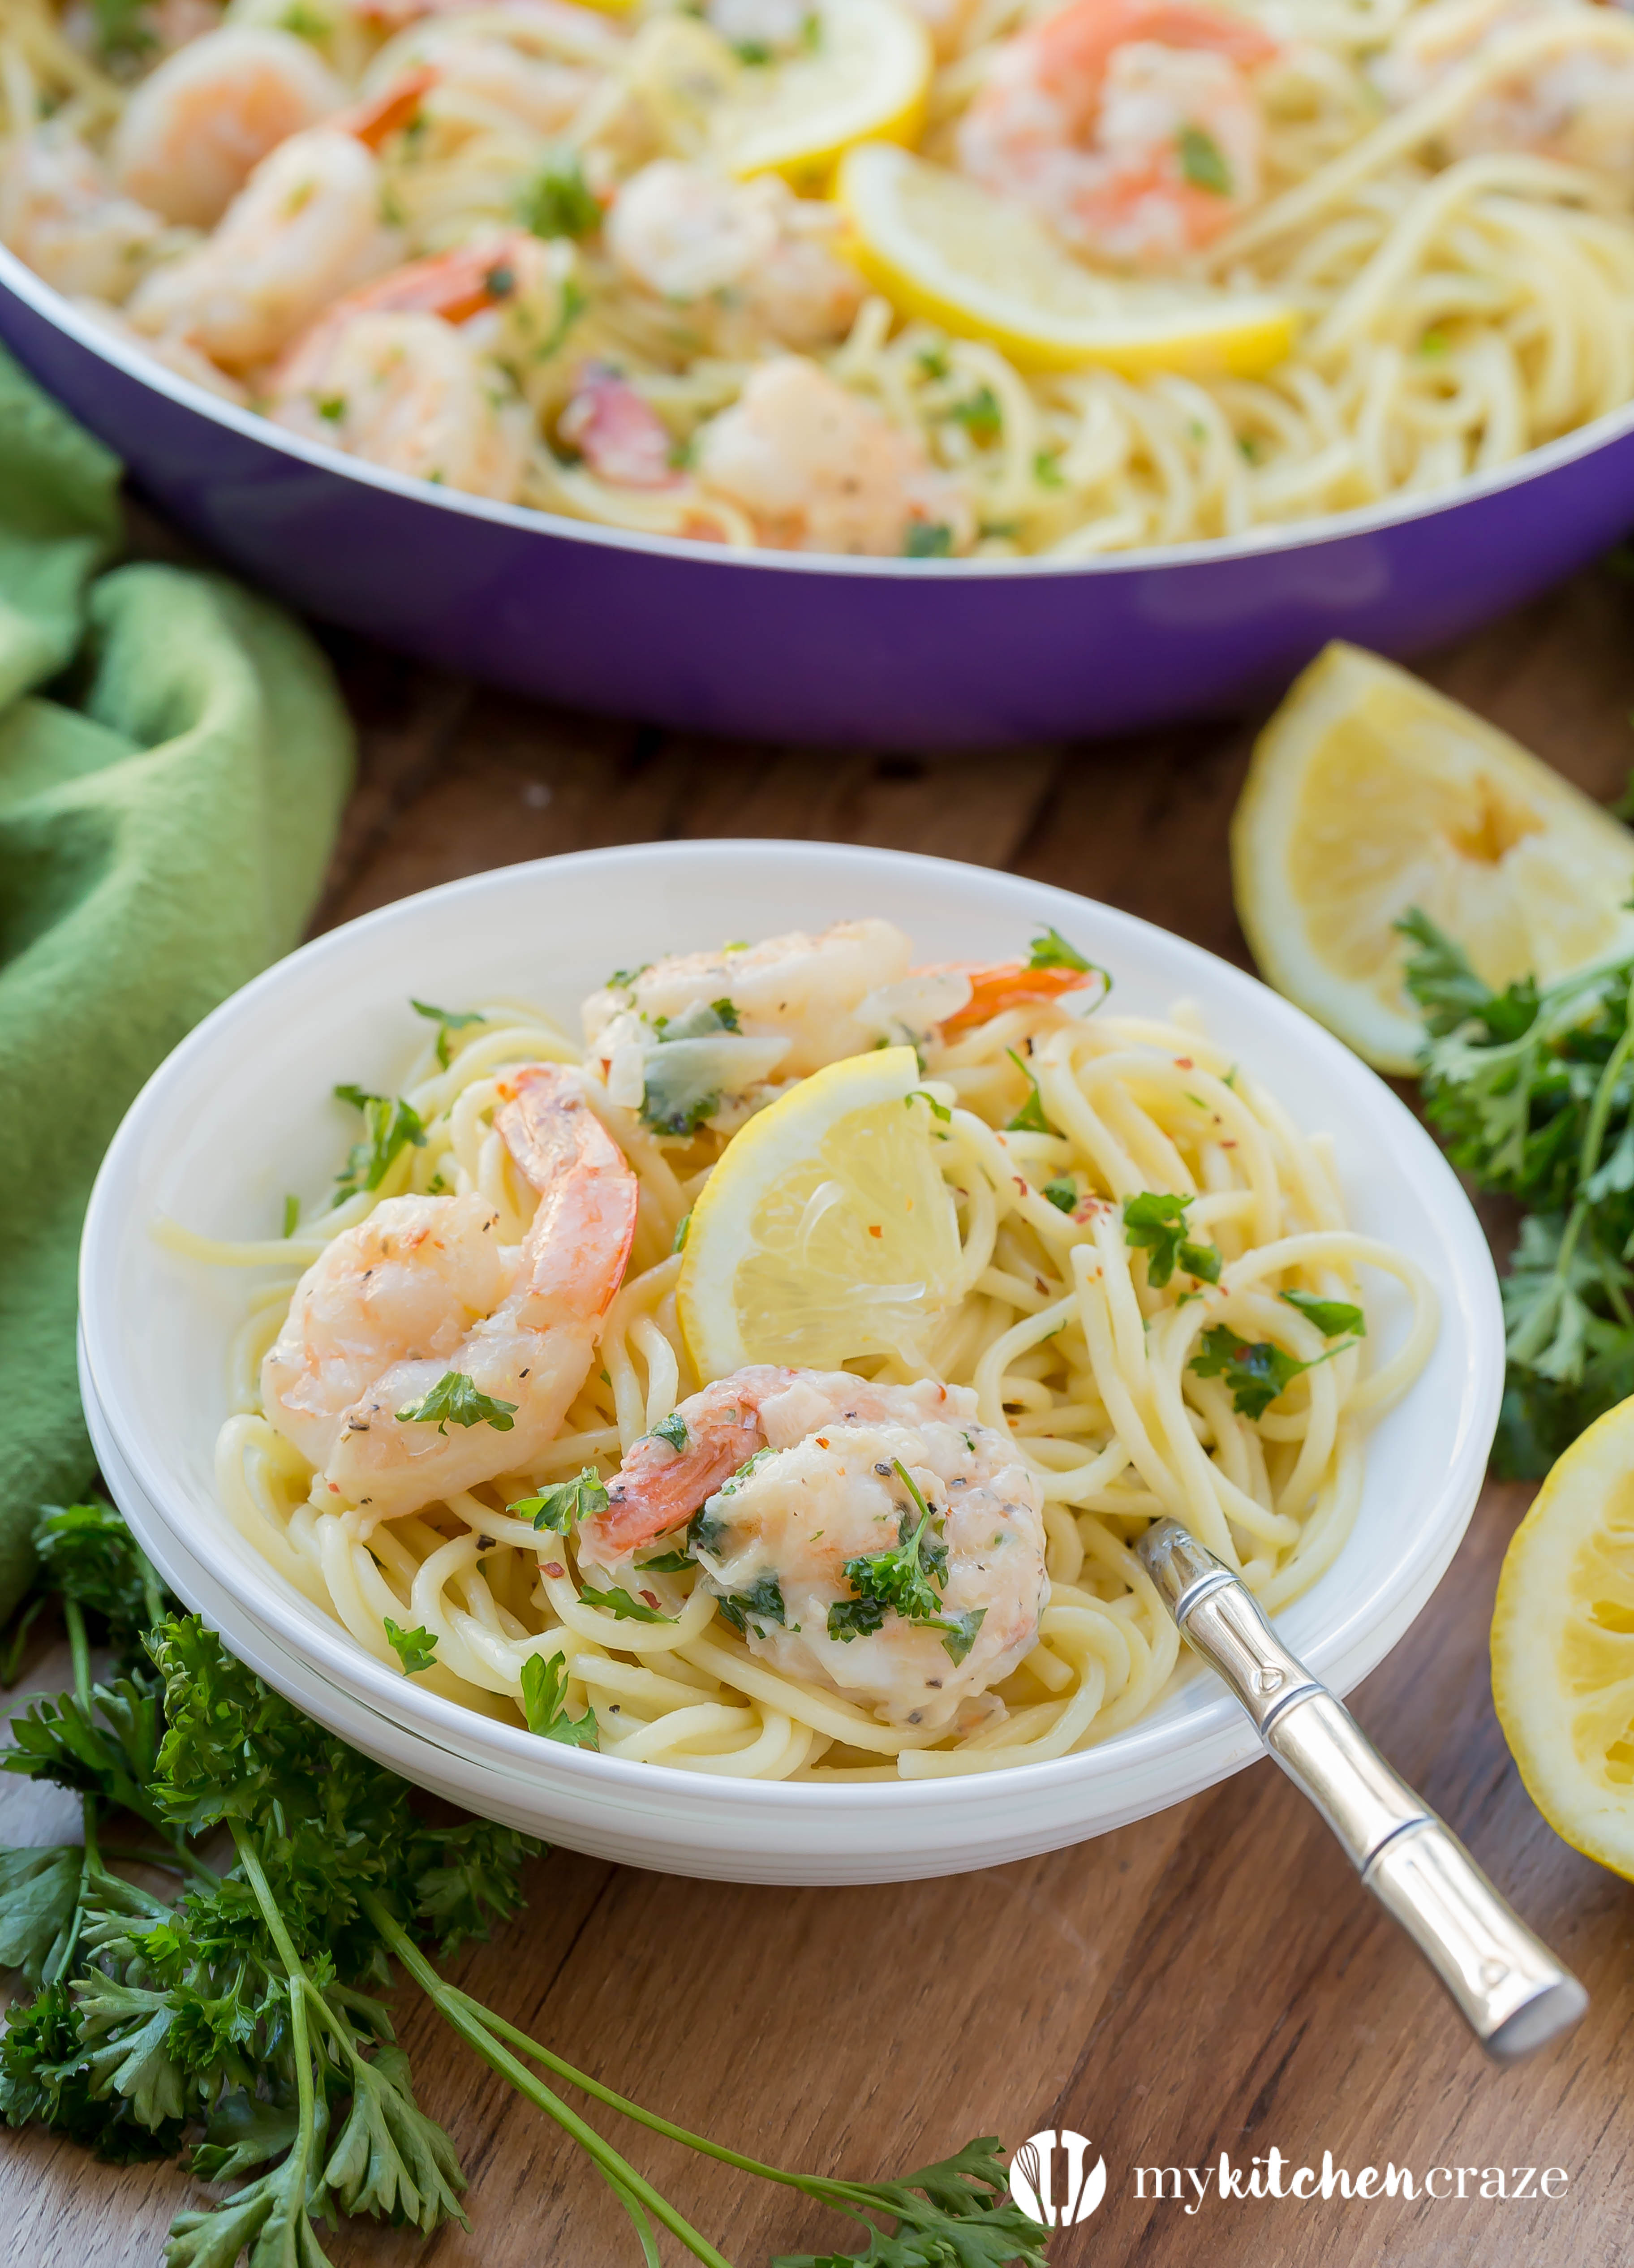 30 minute shrimp scampi a recipe video my kitchen craze 30 minute shrimp scampi is fast becoming a favorite in our house with only 10 forumfinder Images